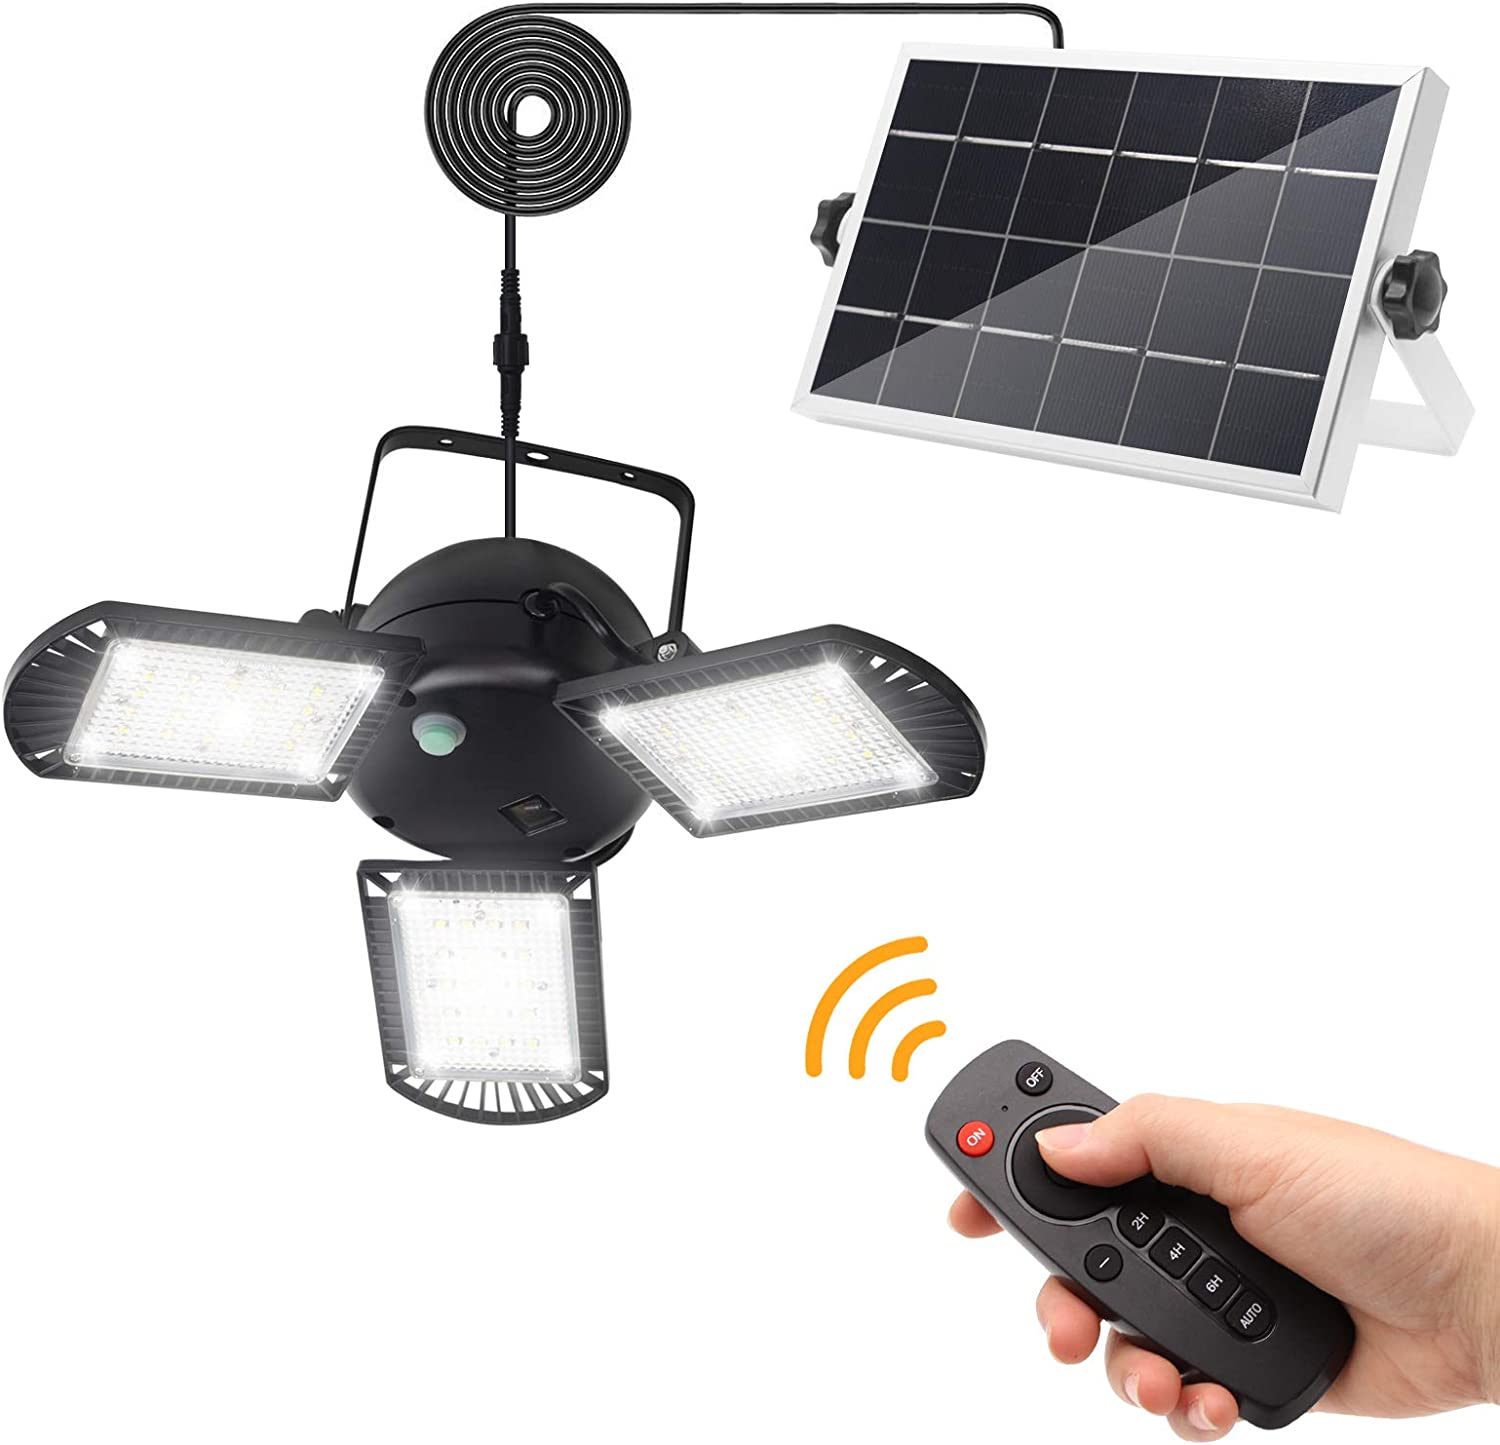 Solar Lights Outdoor, KUFUNG 3 Leaf Solar Pendant Light with Adjustable Multi-Position Panels, Waterproof Solar Lamp with Remote Control, for Garage, Deck, Fence, Patio, Shed, Tent